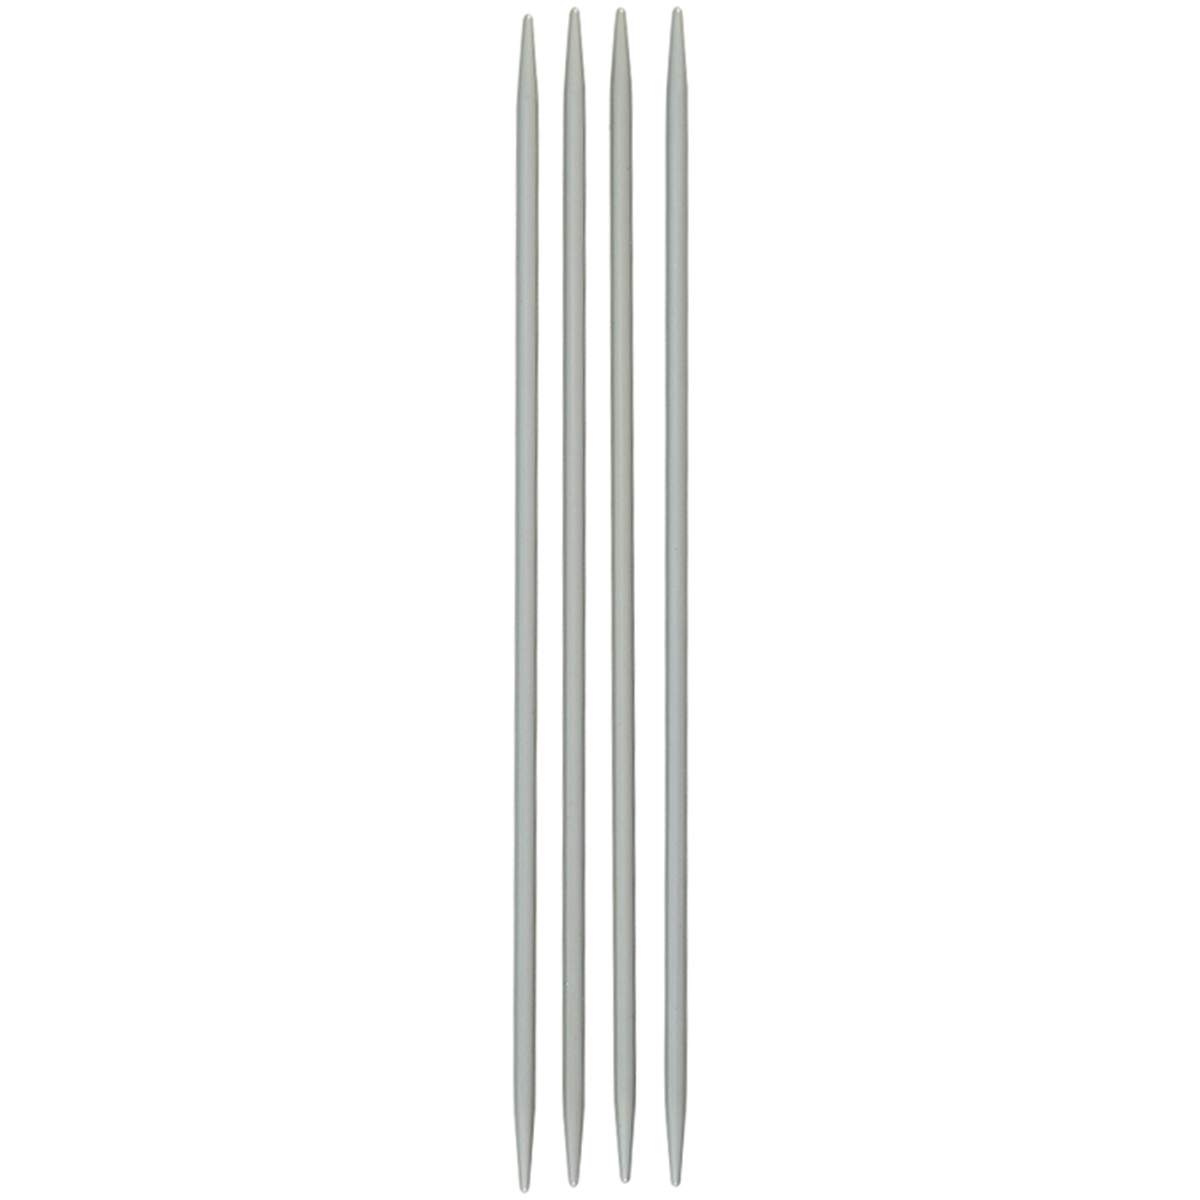 "Quicksilver Double Point Knitting Needles, 10"", 4-Pack, Size 10"